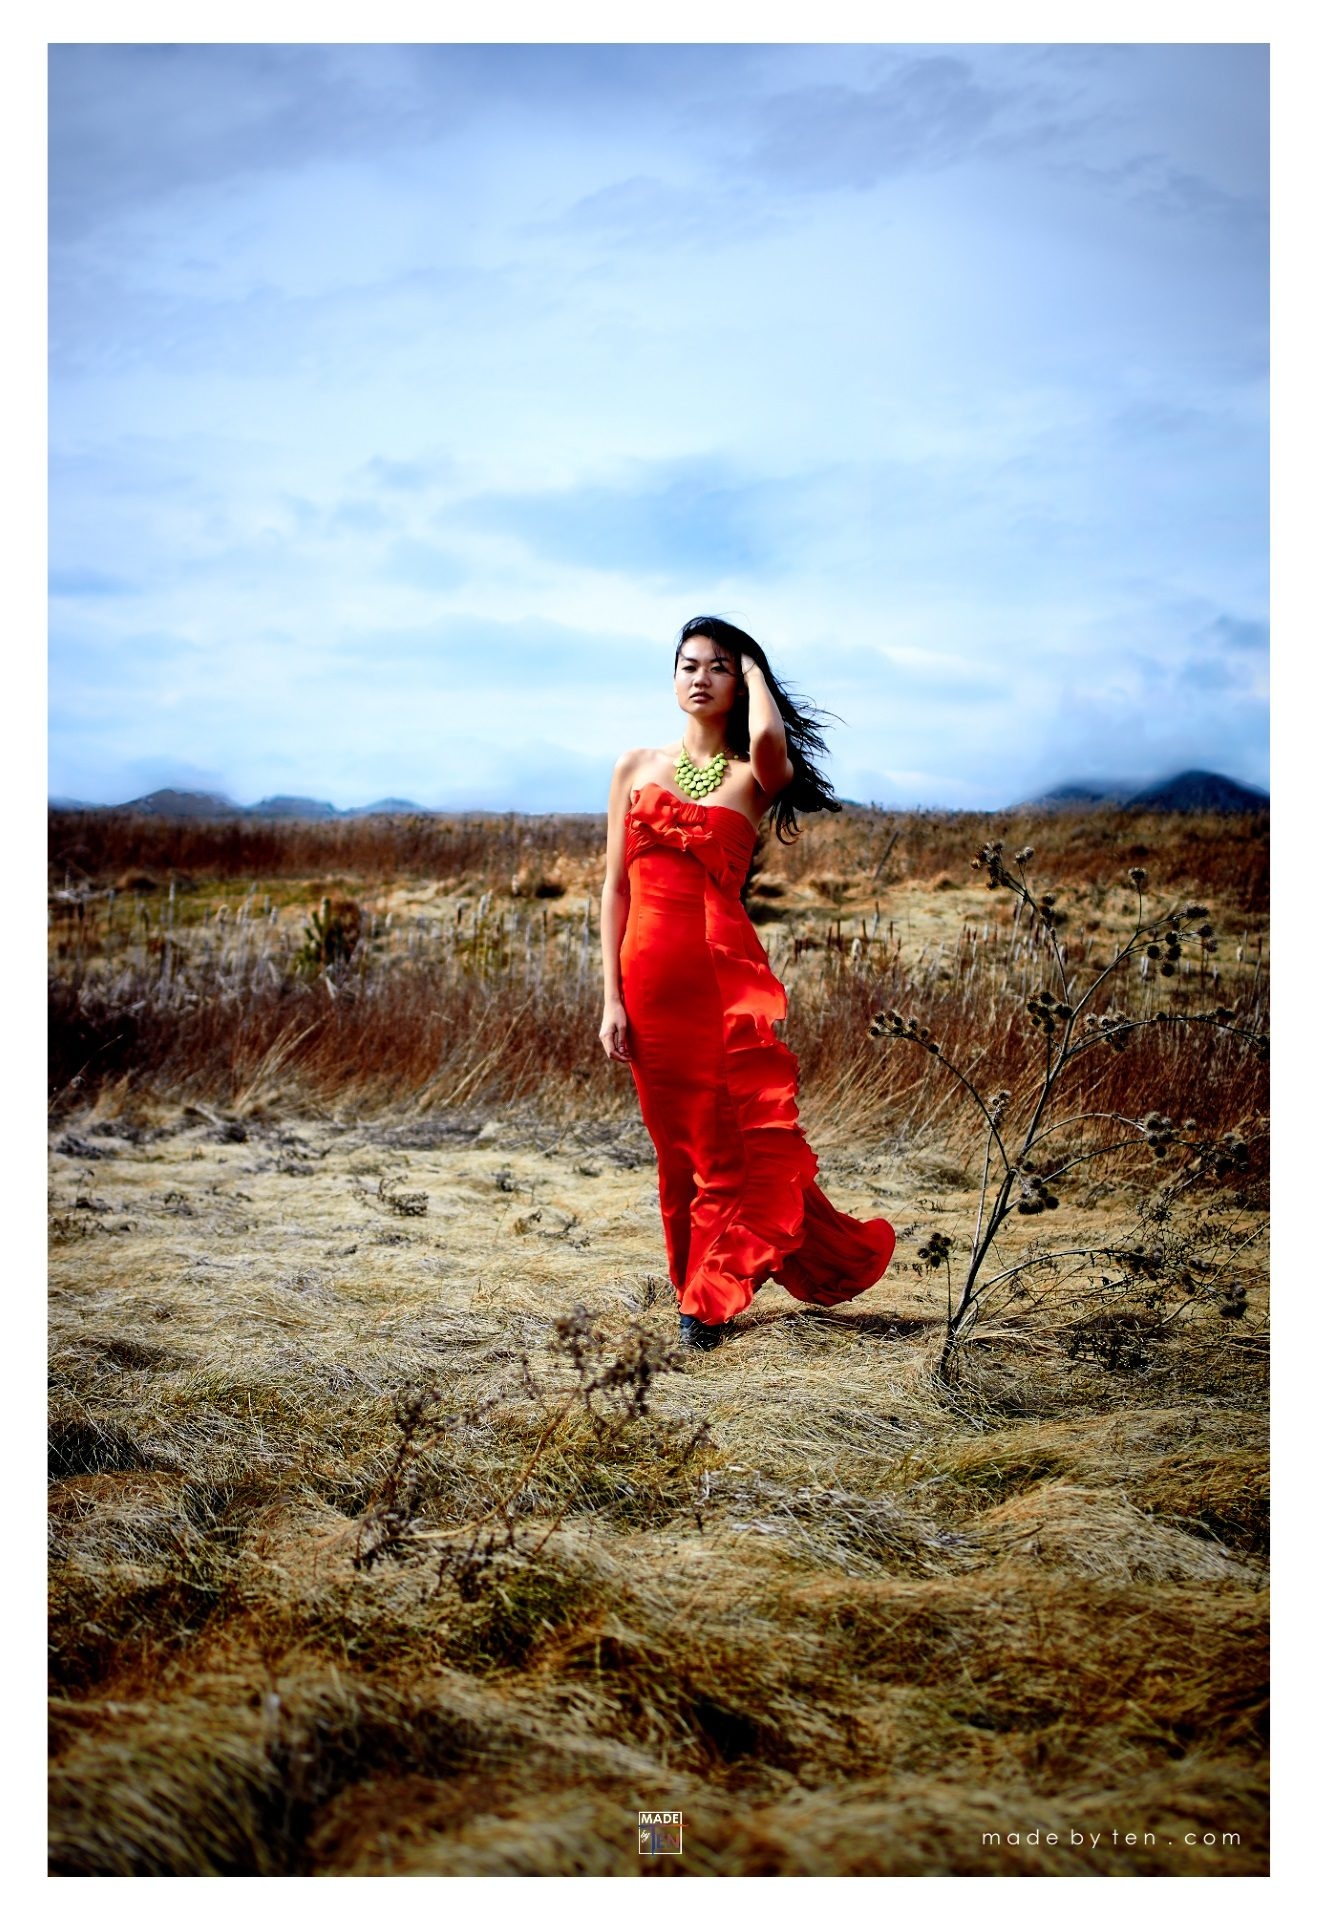 Made-by-Ten-Modern-Creative-Fine-Art-Portrait-Photography-GTA-Women-Toronto-Desert-Red-Dress-Model-Mountains-1